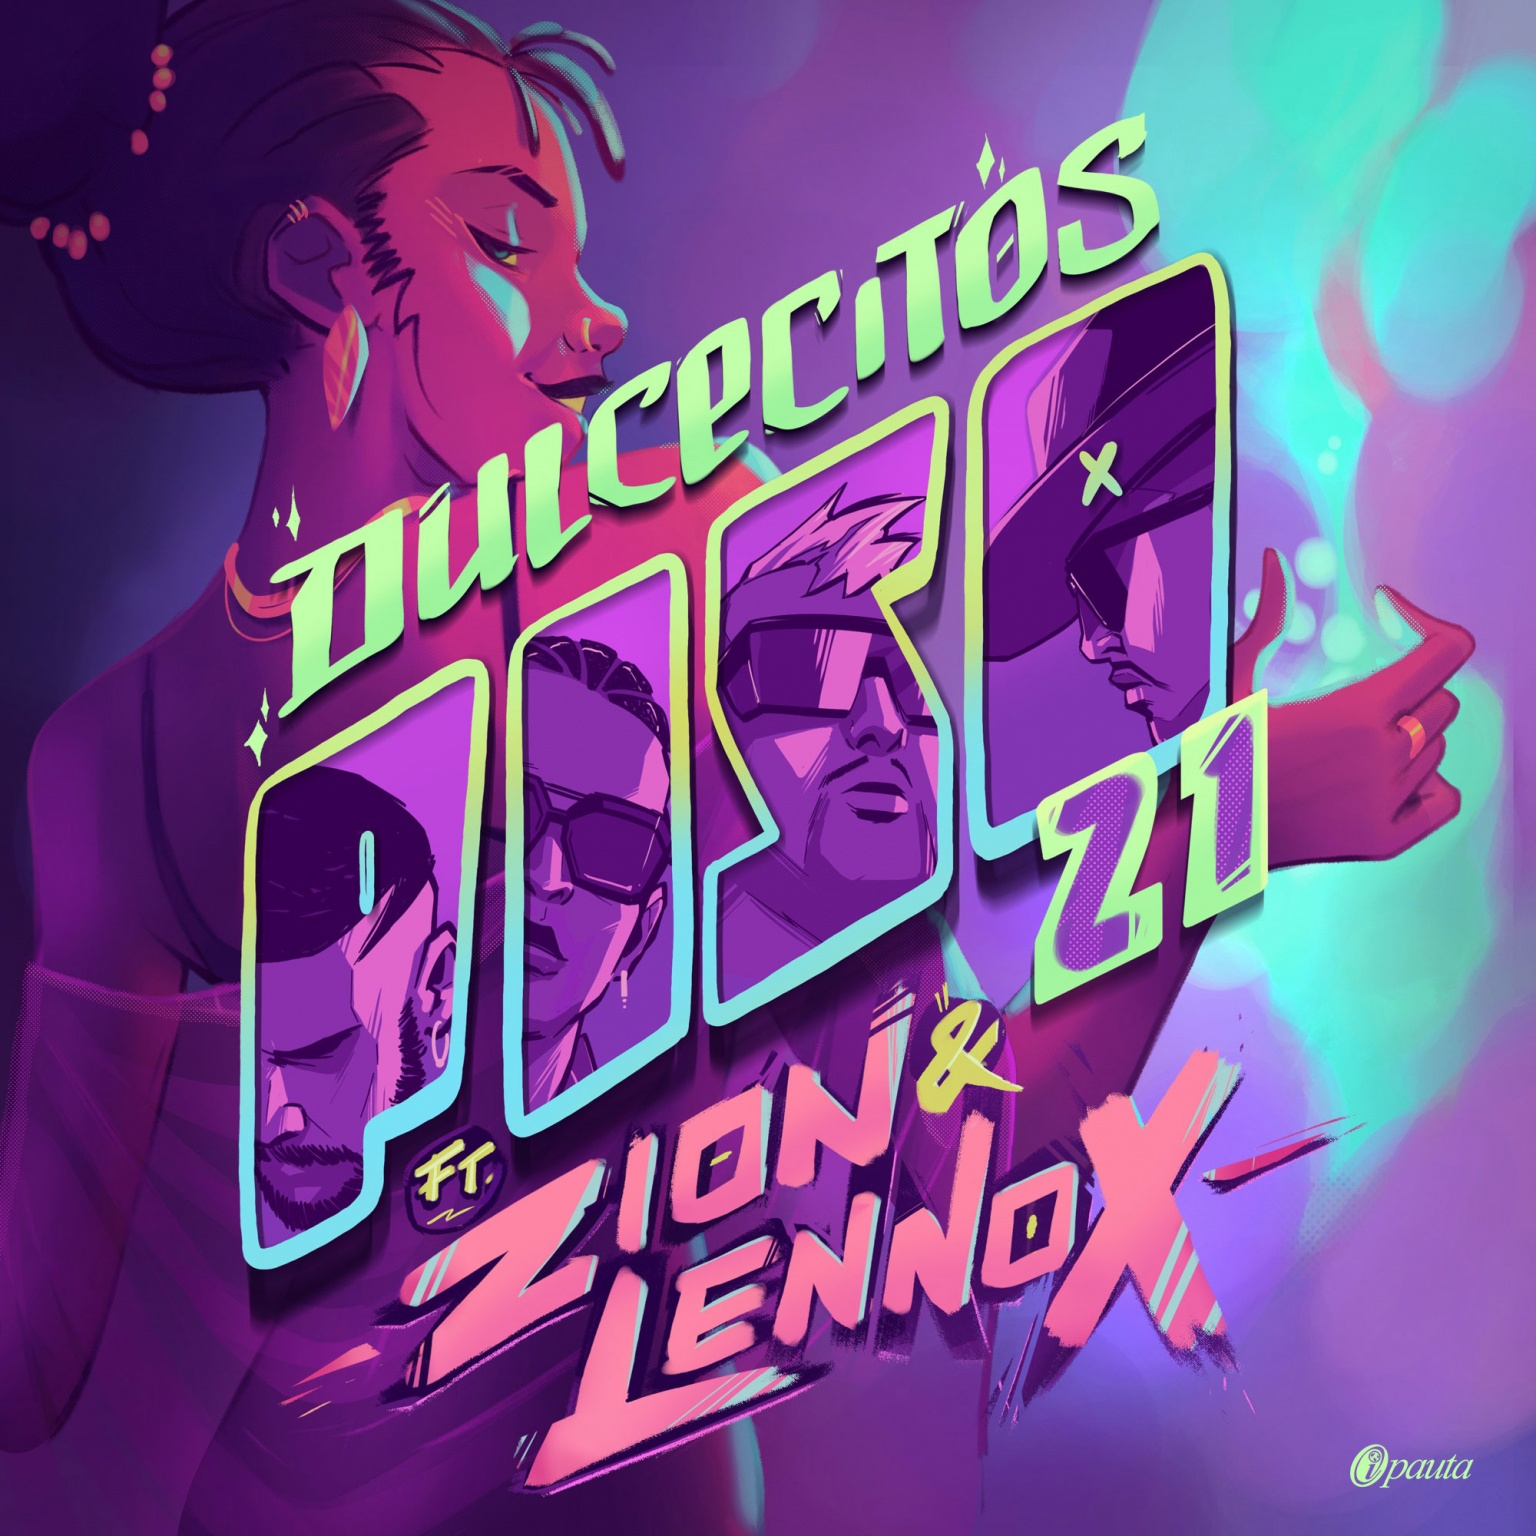 Piso 21 Ft. Zion y Lennox - Dulcecitos